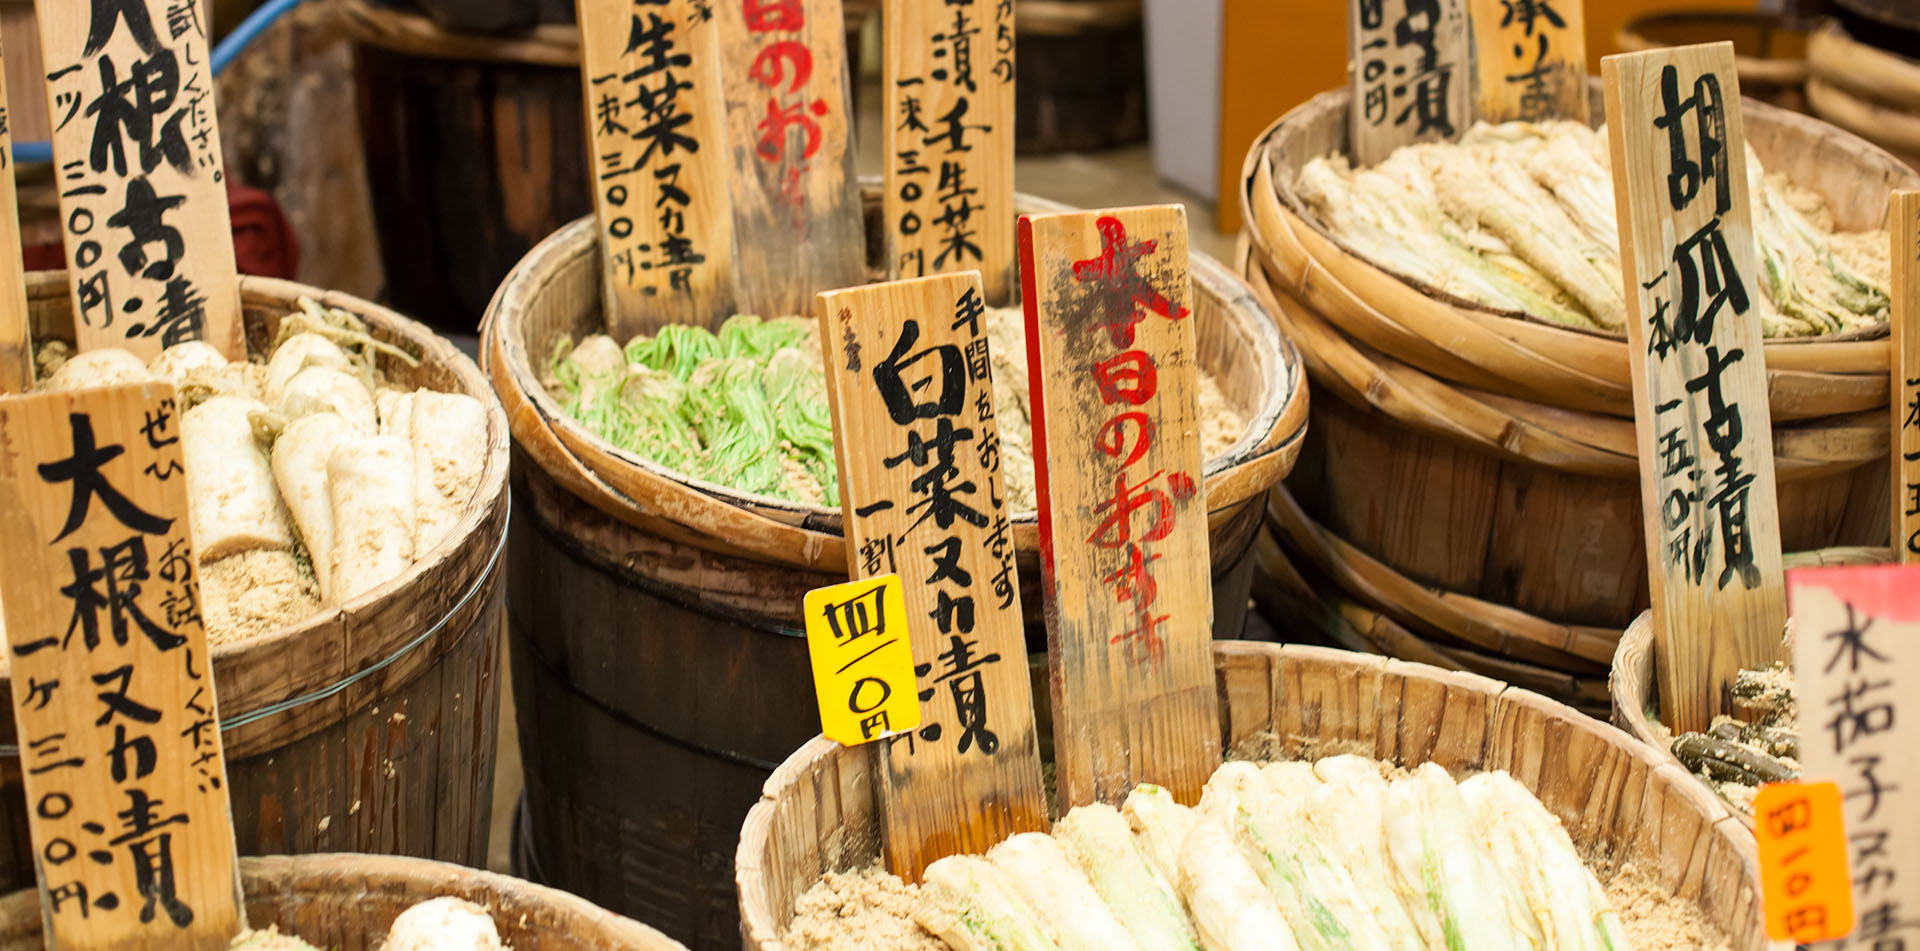 Traditional market in Tokyo, Japan